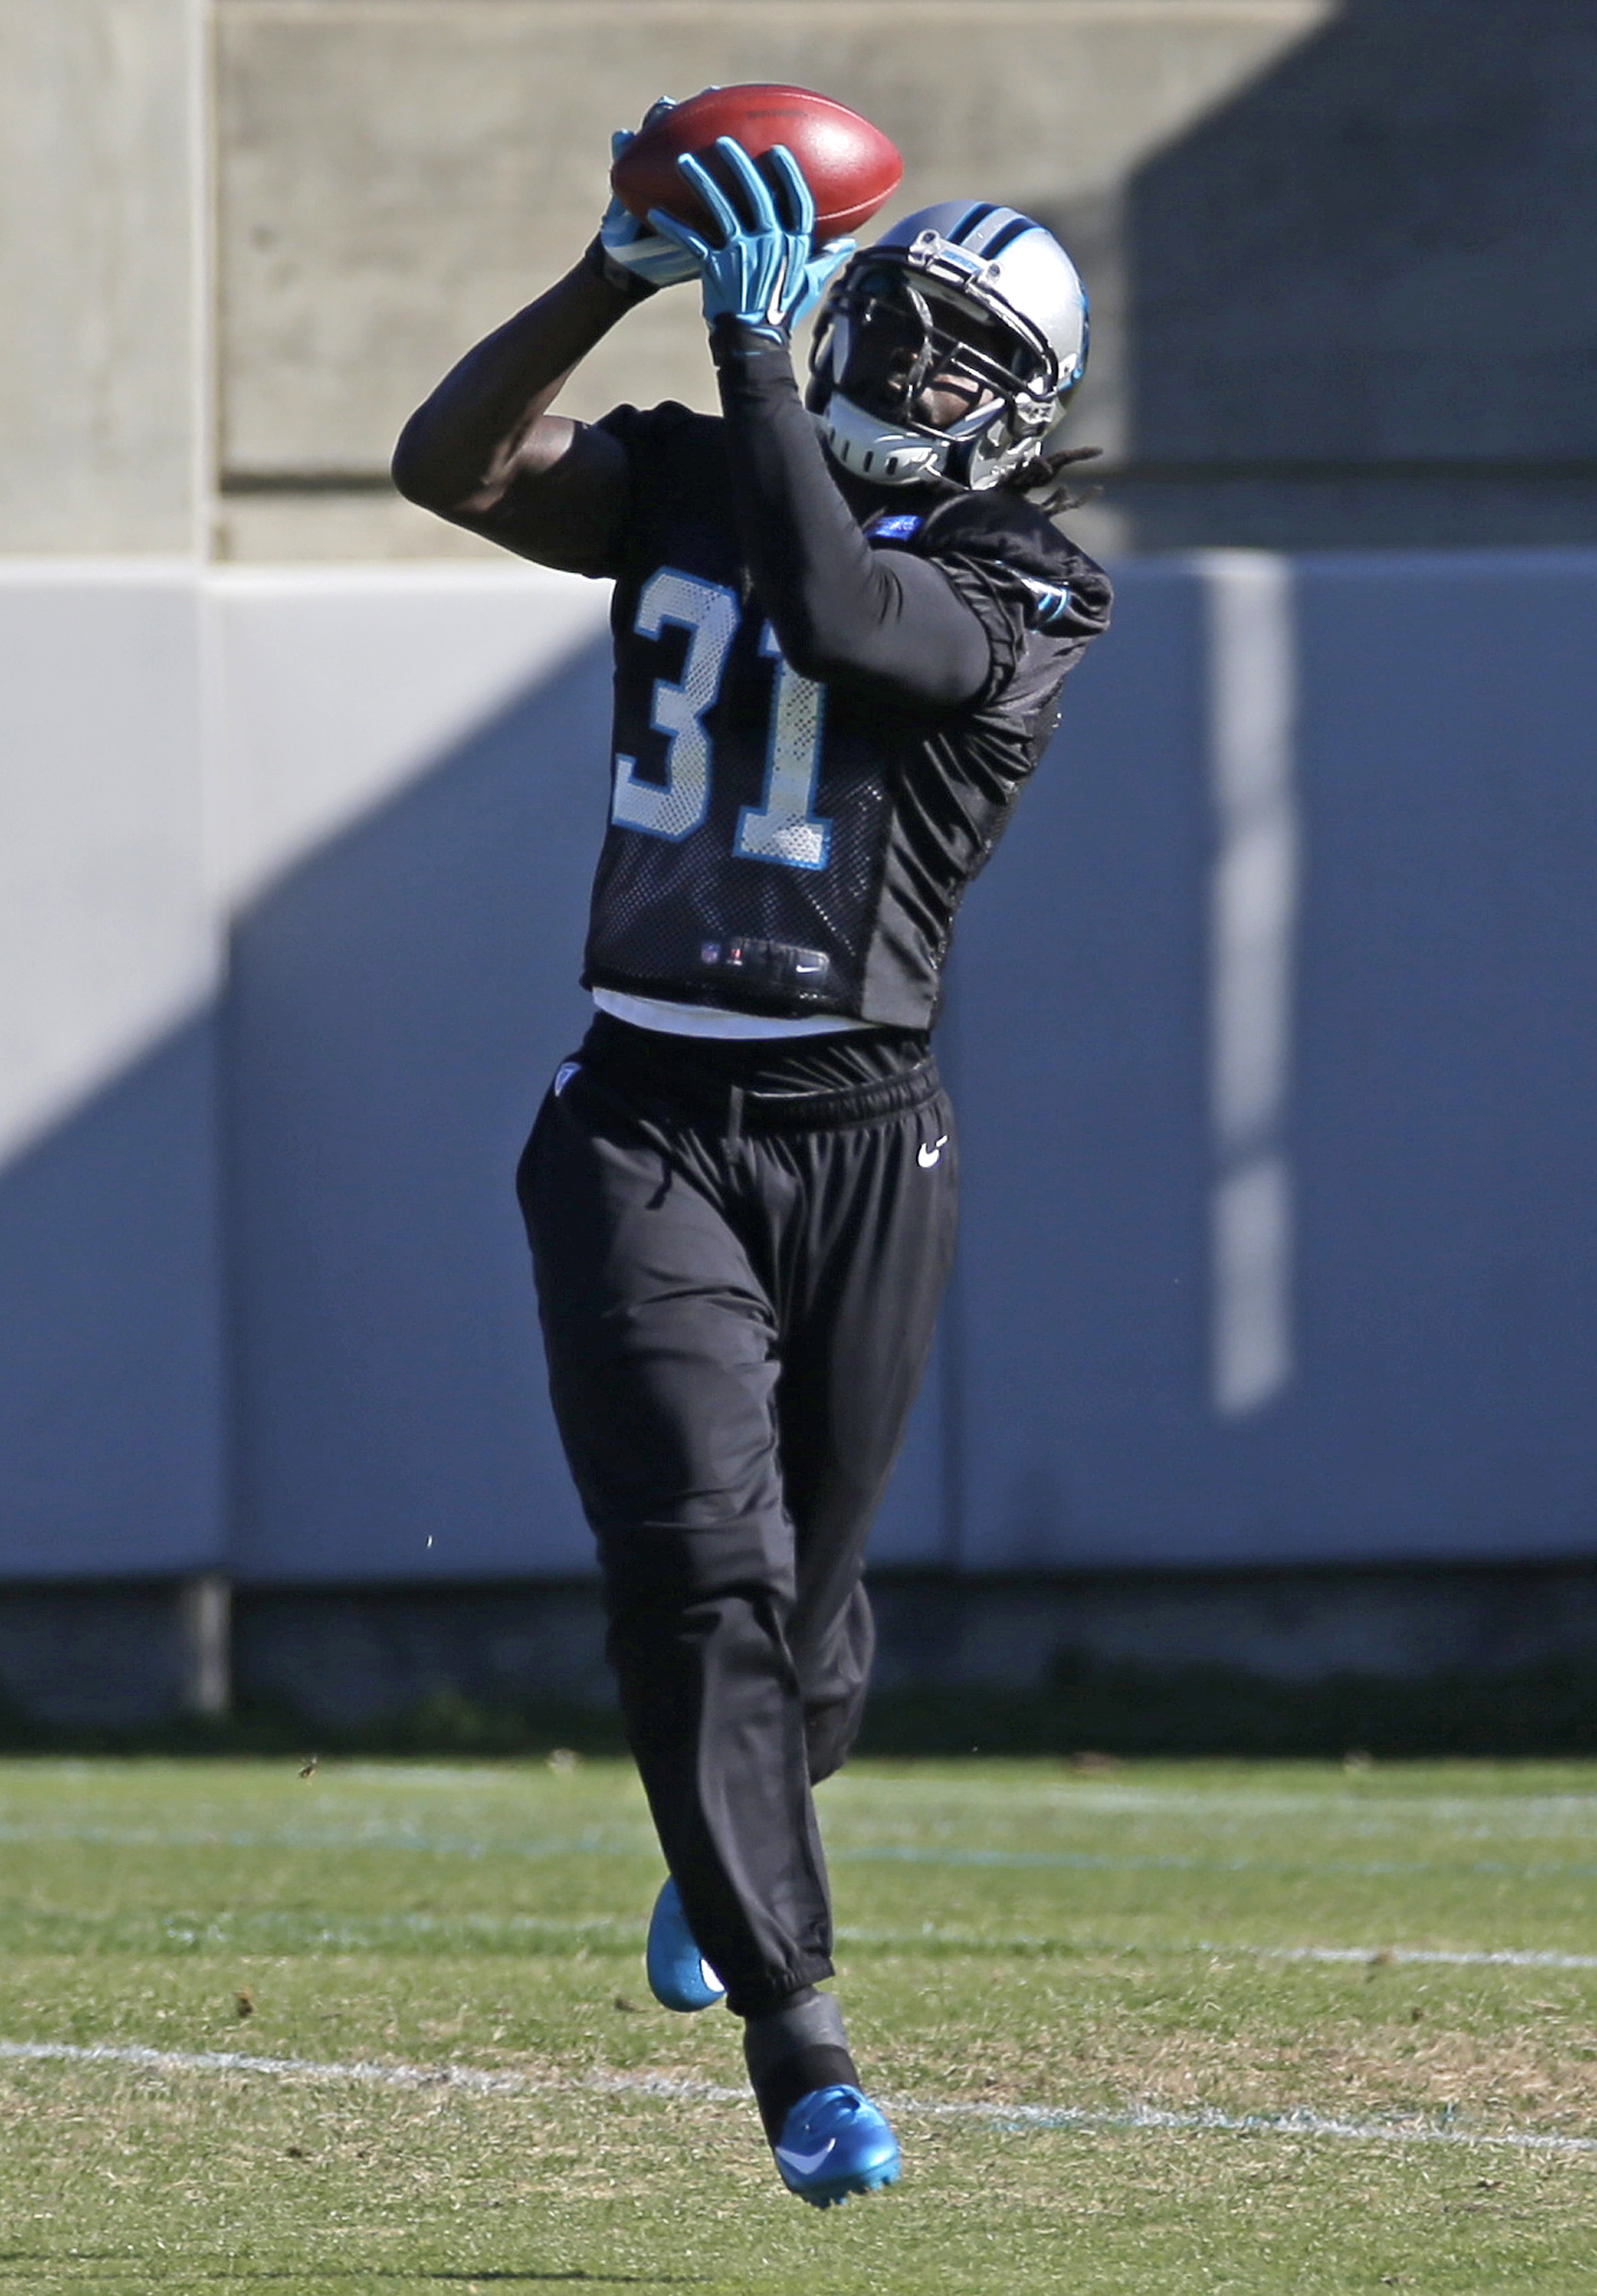 Carolina Panthers' Charles Tillman (31) catches a ball during practice for the NFL football team in Charlotte, N.C., Wednesday, Dec. 16, 2015. (AP Photo/Chuck Burton)